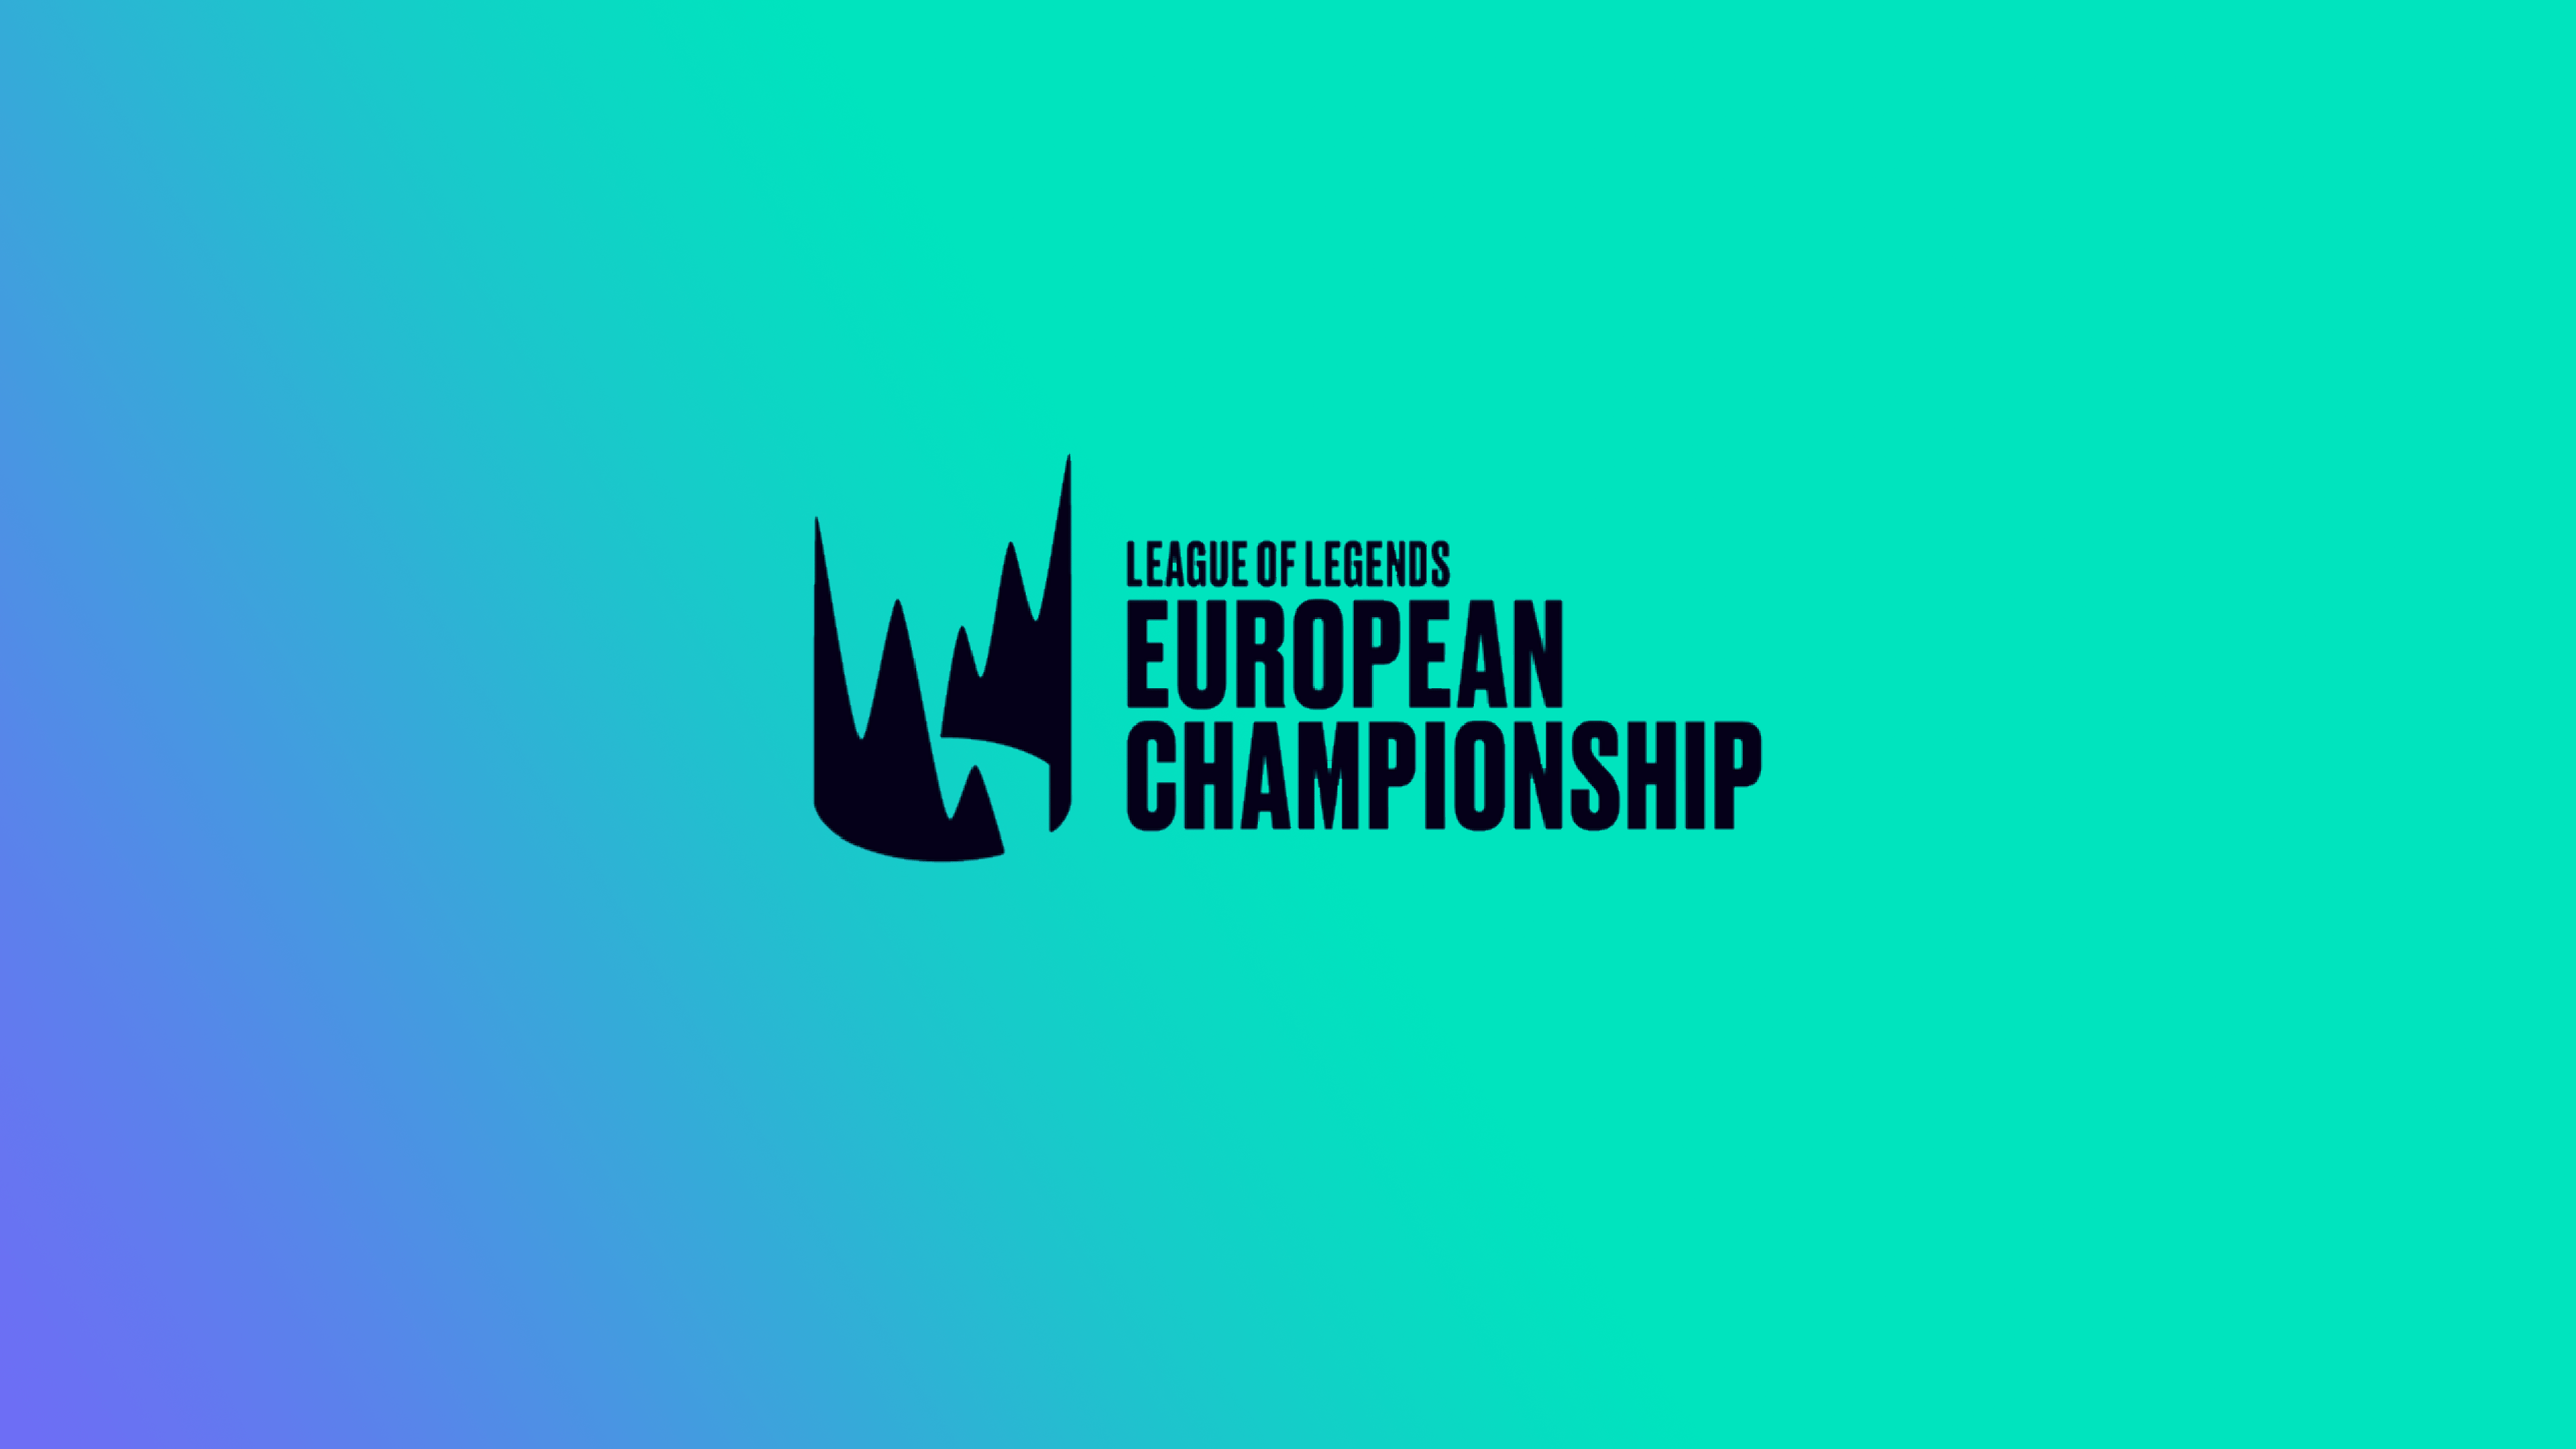 Week 6, Day 1 Overview, And Summary Of League European Championship 2020 By Scairtin